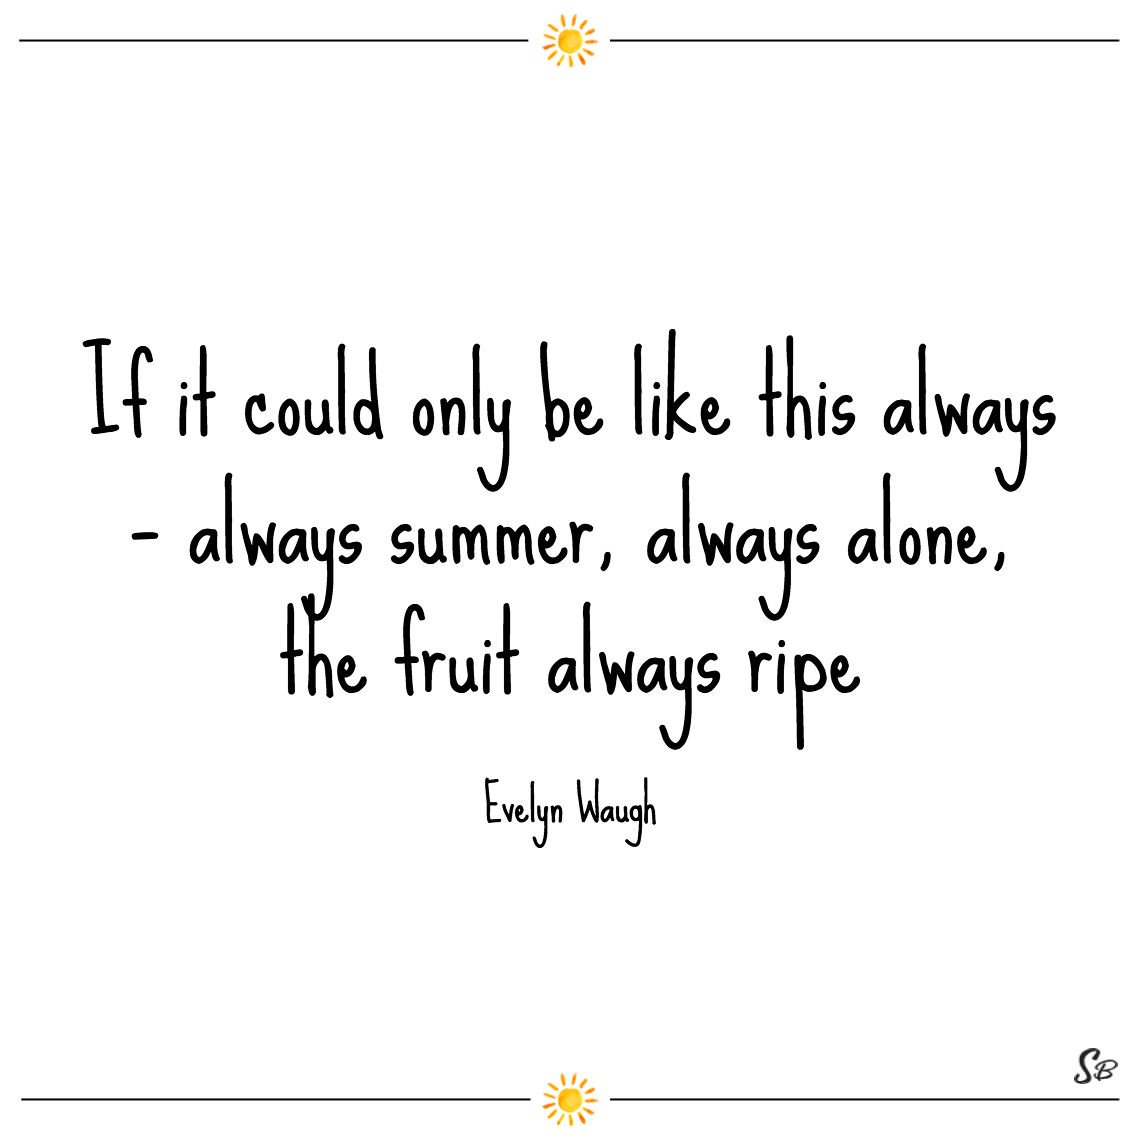 If it could only be like this always – always summer, always alone, the fruit always ripe evelyn waugh